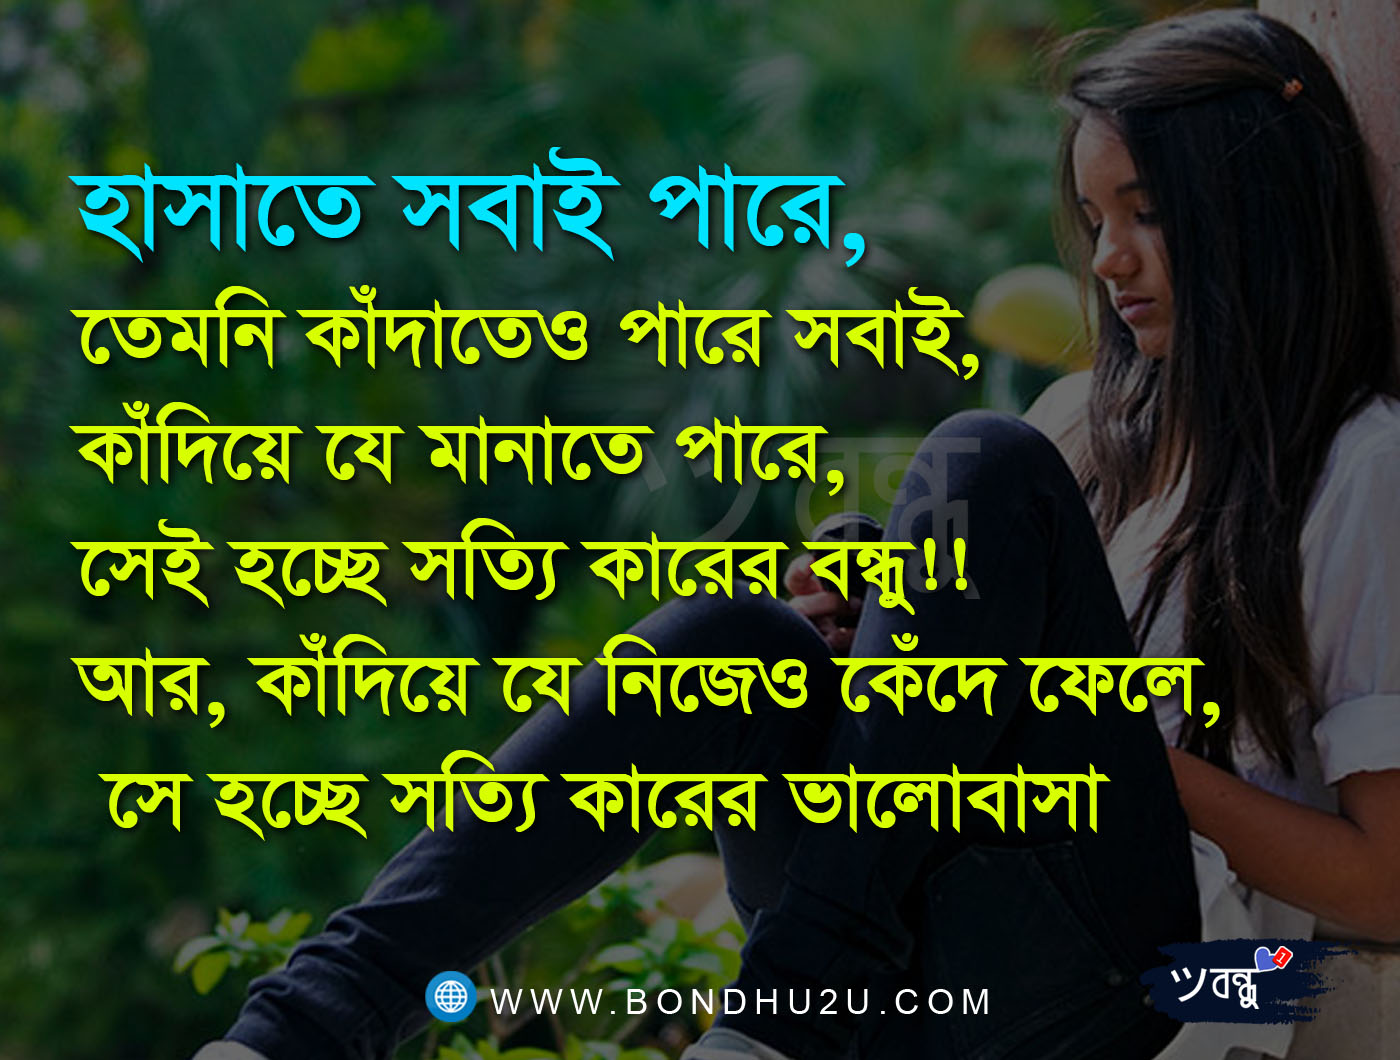 Bangla New Love Wallpaper : Best Bangla Love SMS - Hot Romantic Bangla Kobita Love Images SMS - bengali writing wallpaper ...